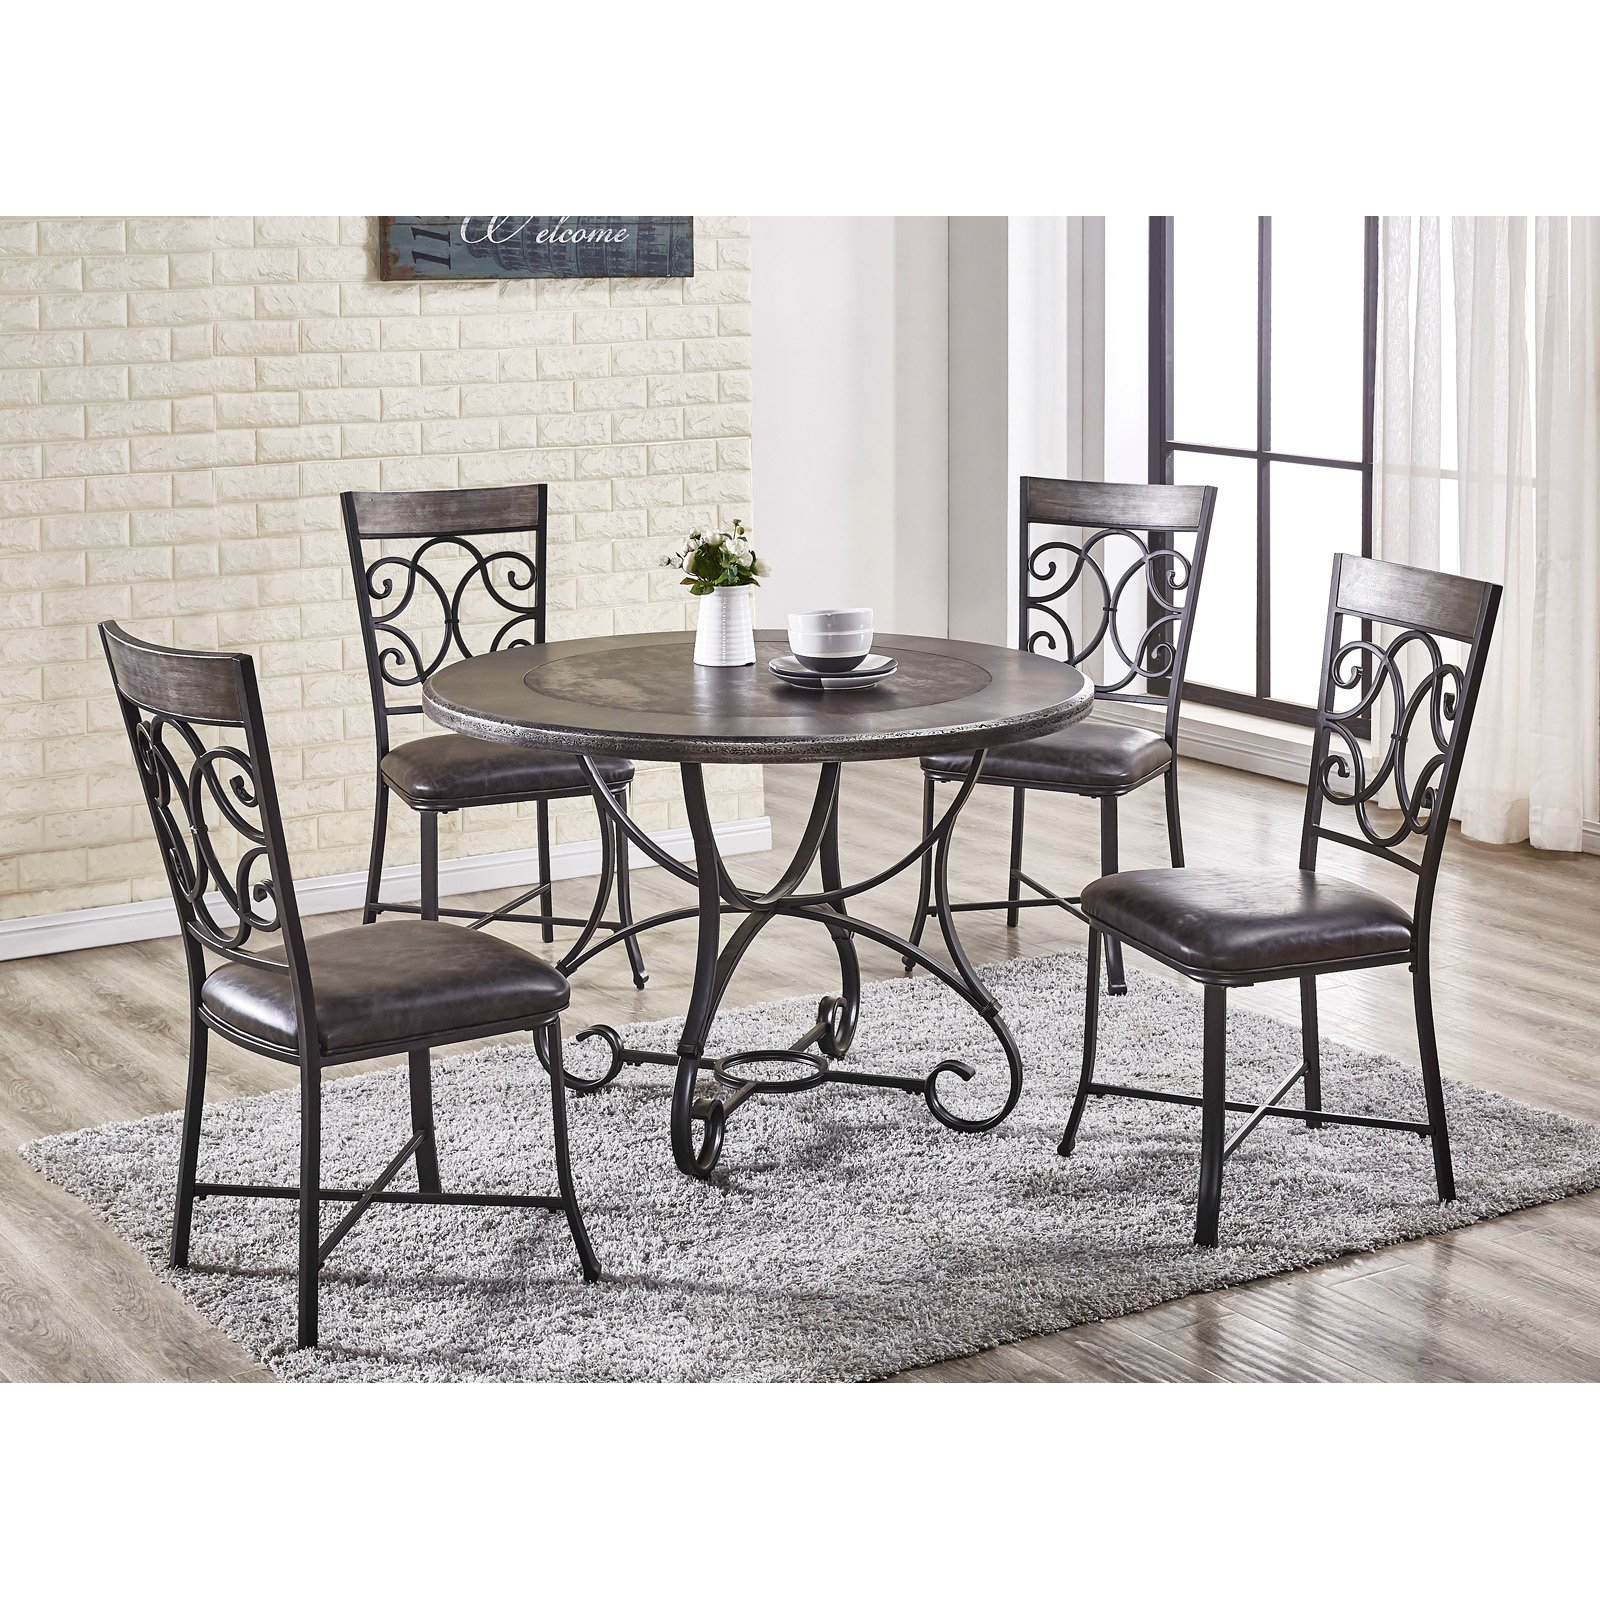 Steve Silver Co. Greystone 5 Piece Round Dining Set